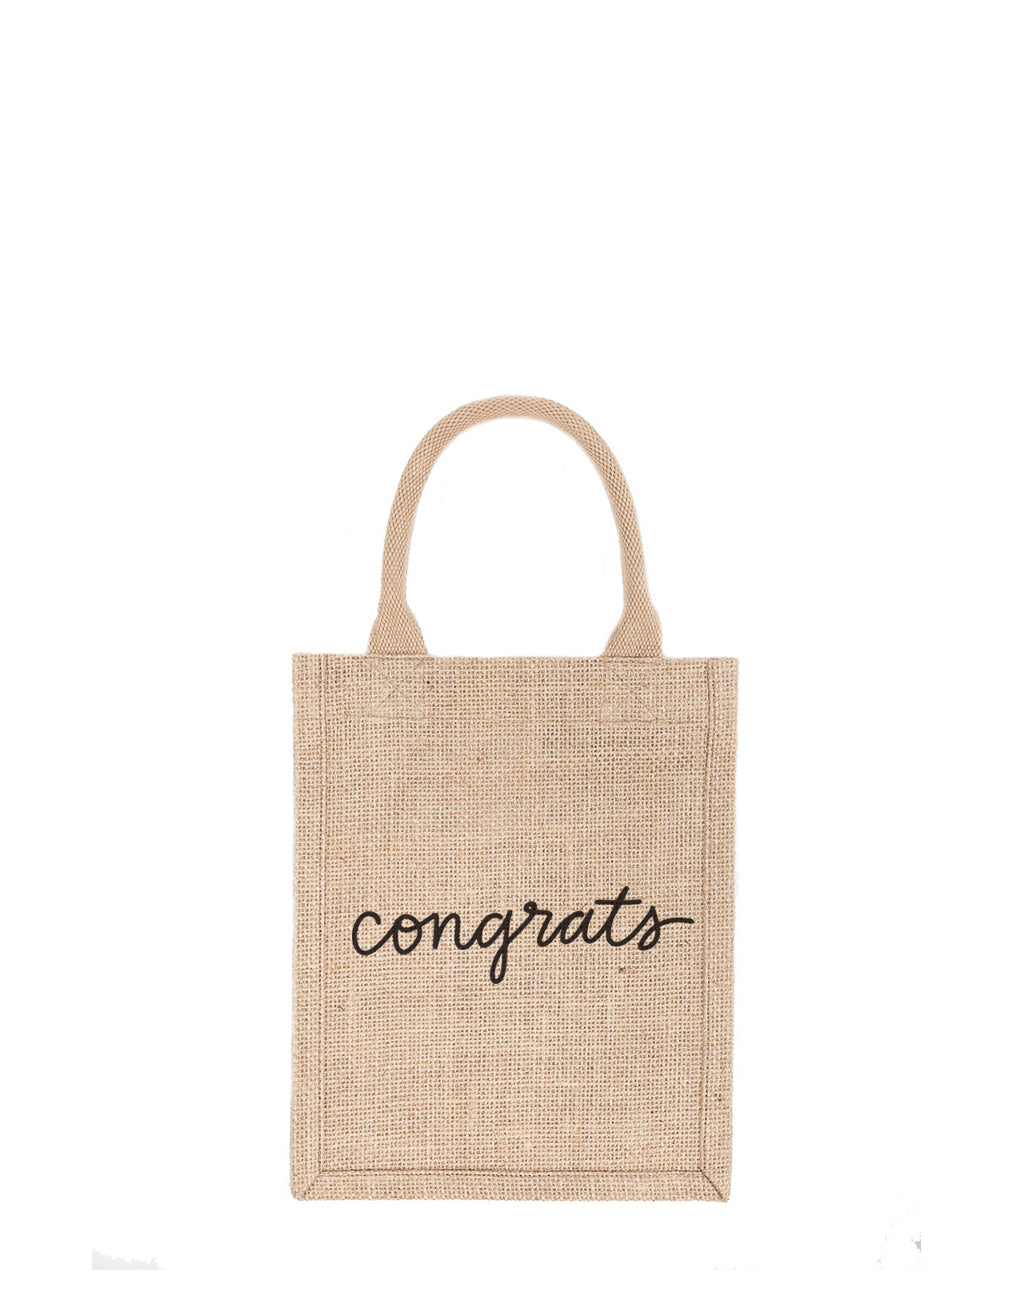 Small Congrats Reusable Gift Tote In Black Font | The Little Market